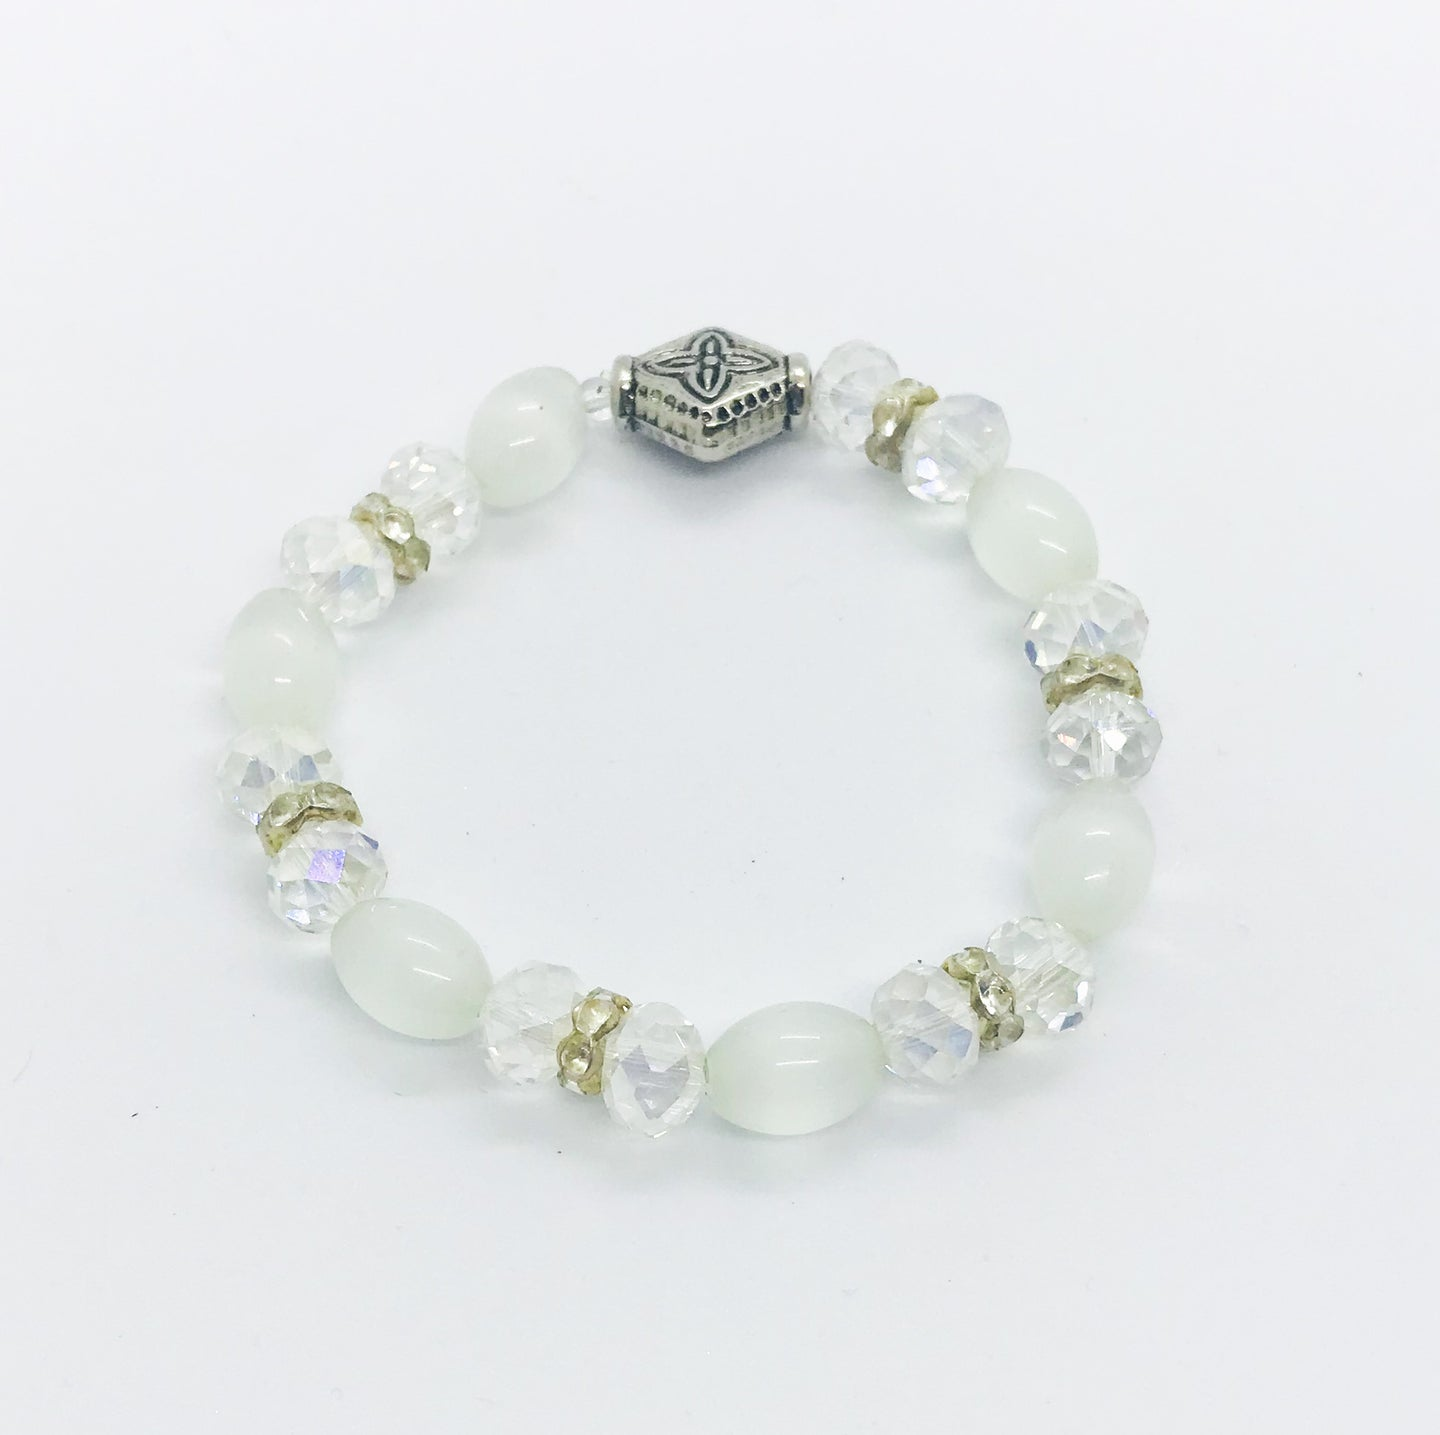 Glass Bead Stretchy Bracelet - B858